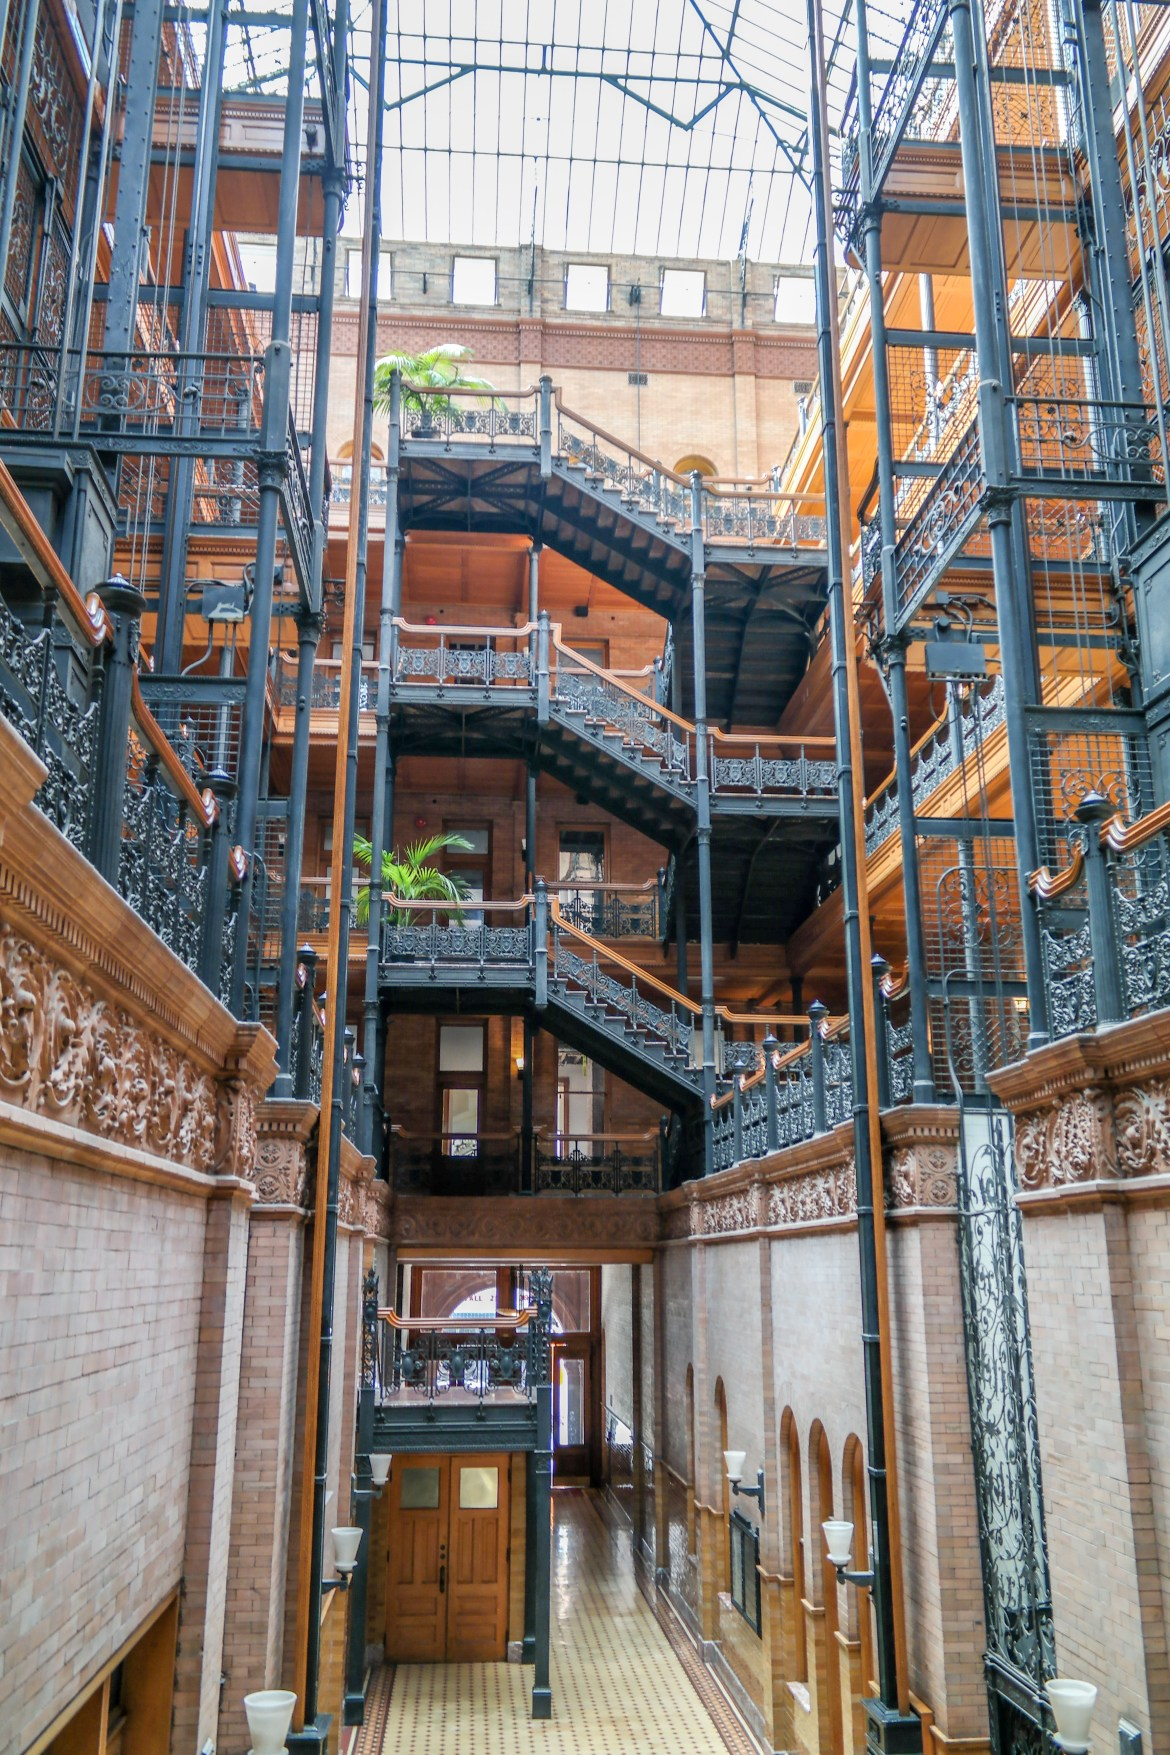 Bradbury Building Los Angeles California #bladerunner